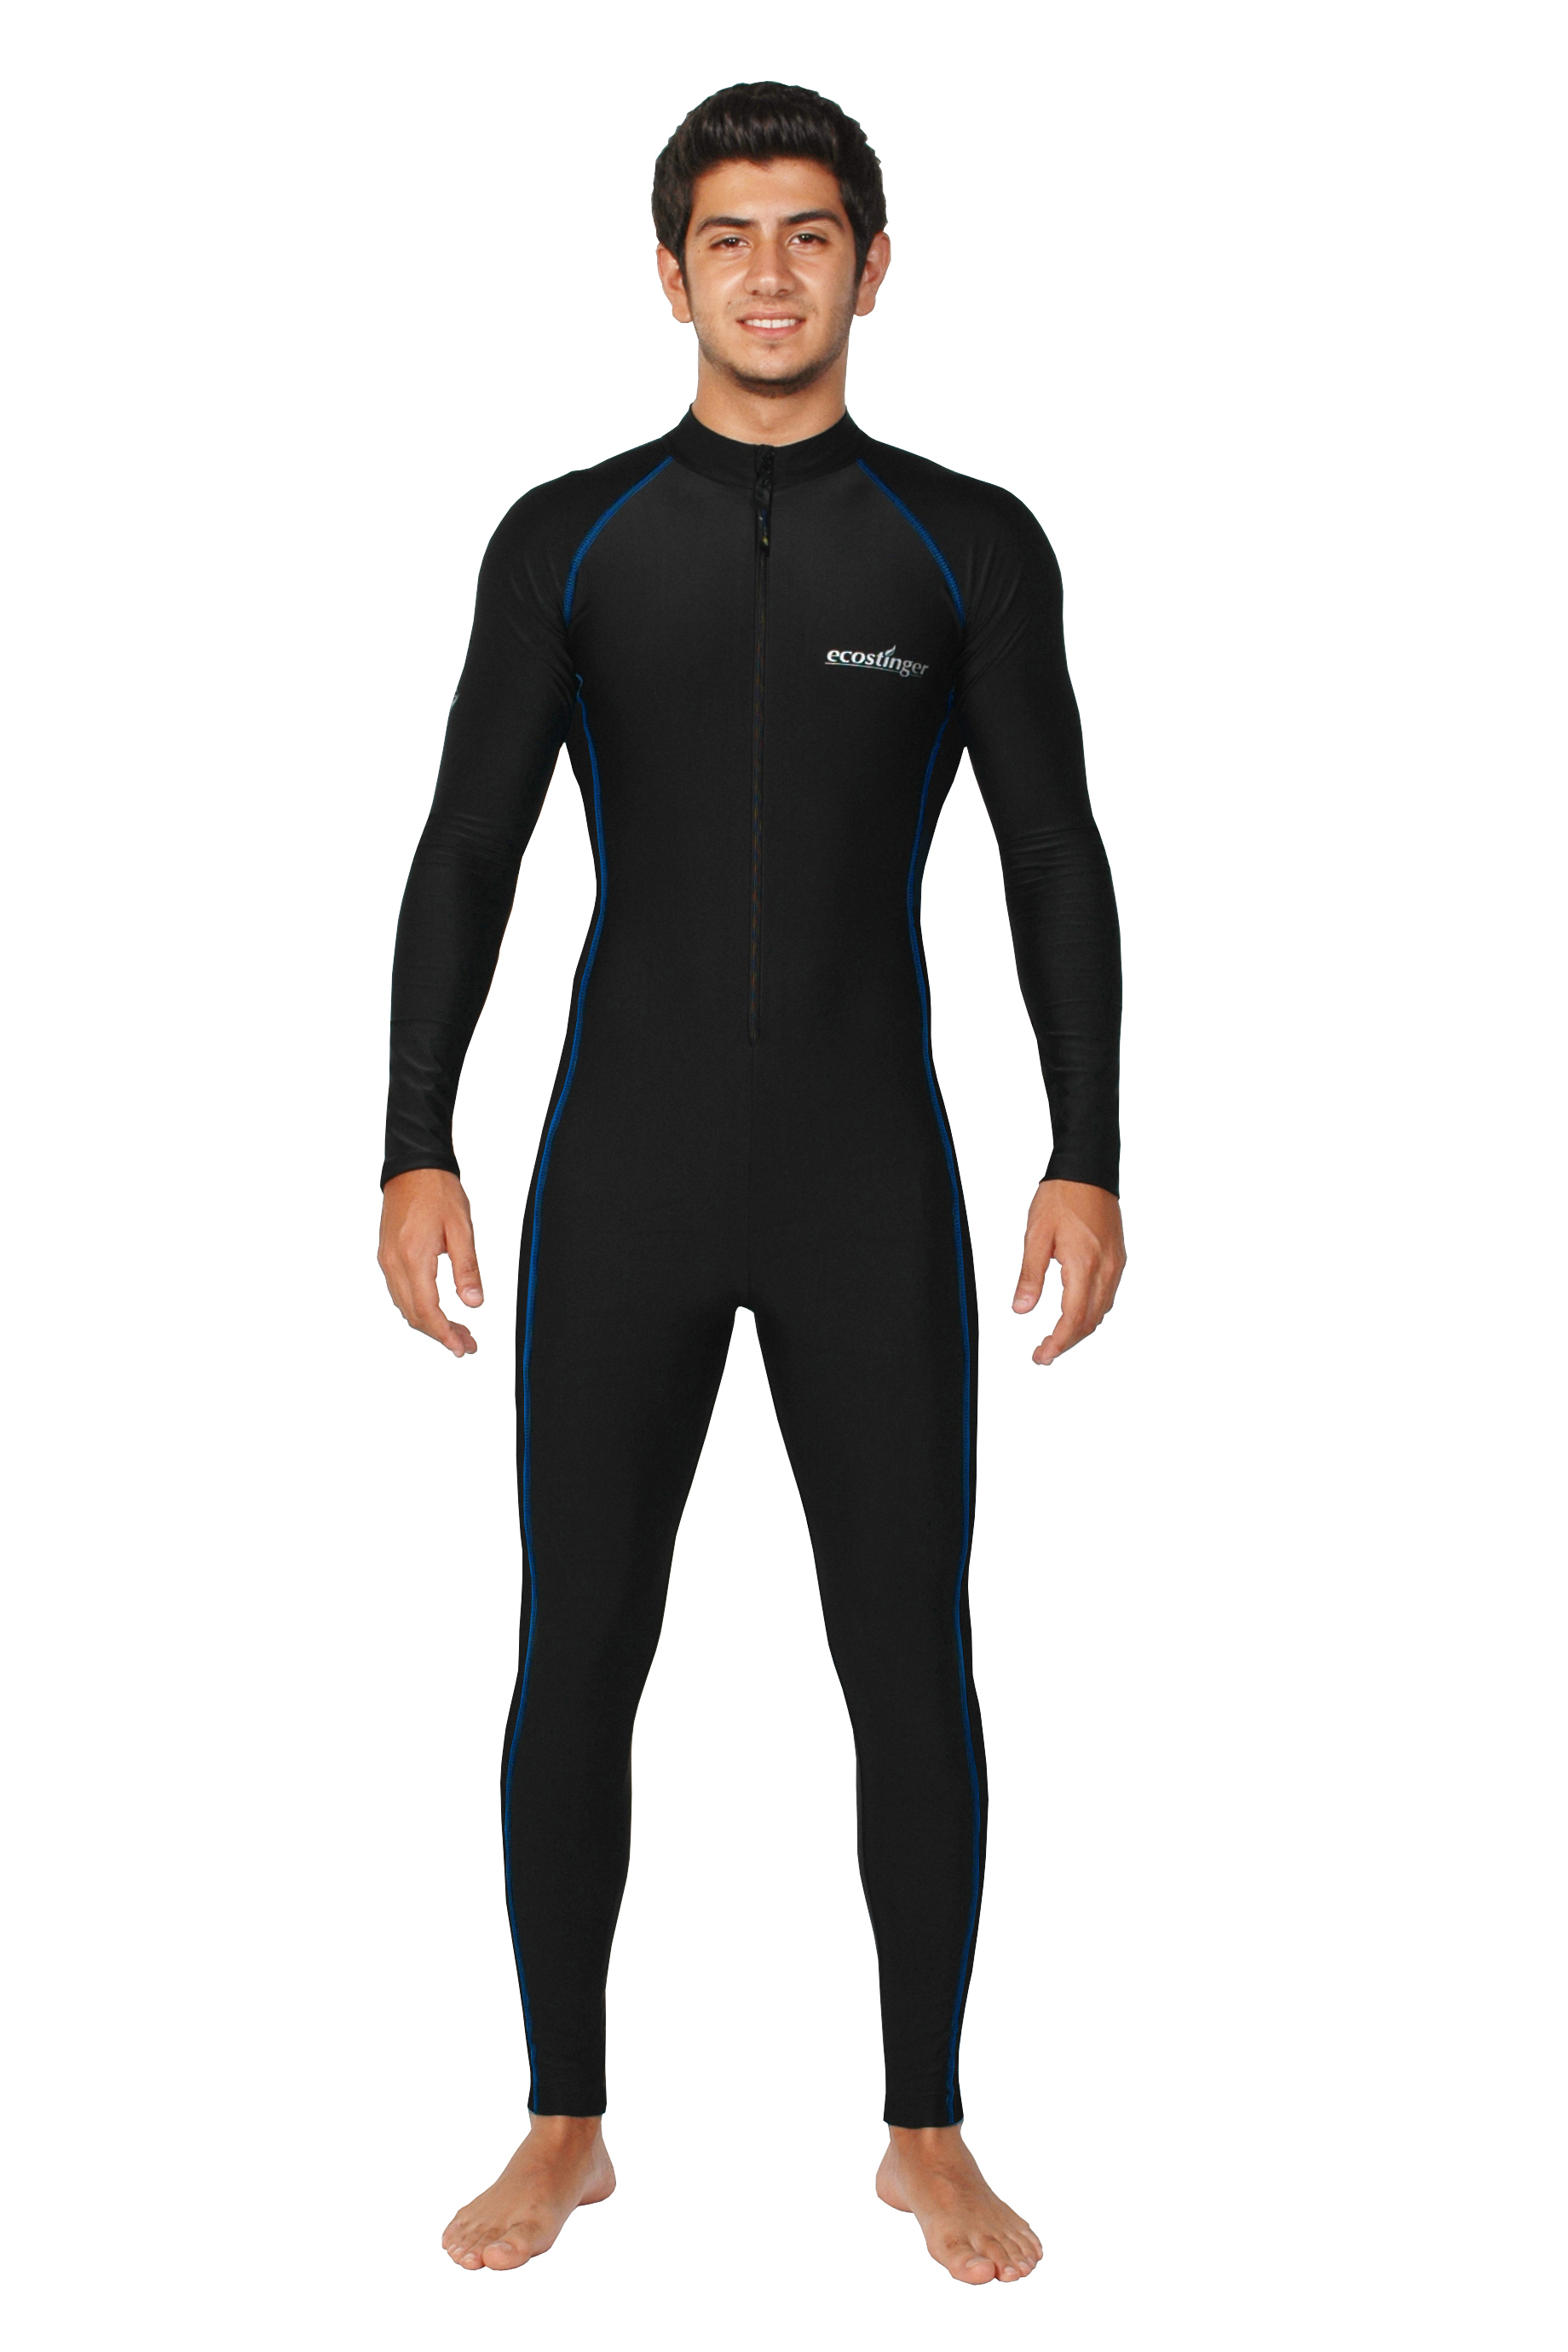 Underwater Scuba Diving Snorkeling Swimsuit